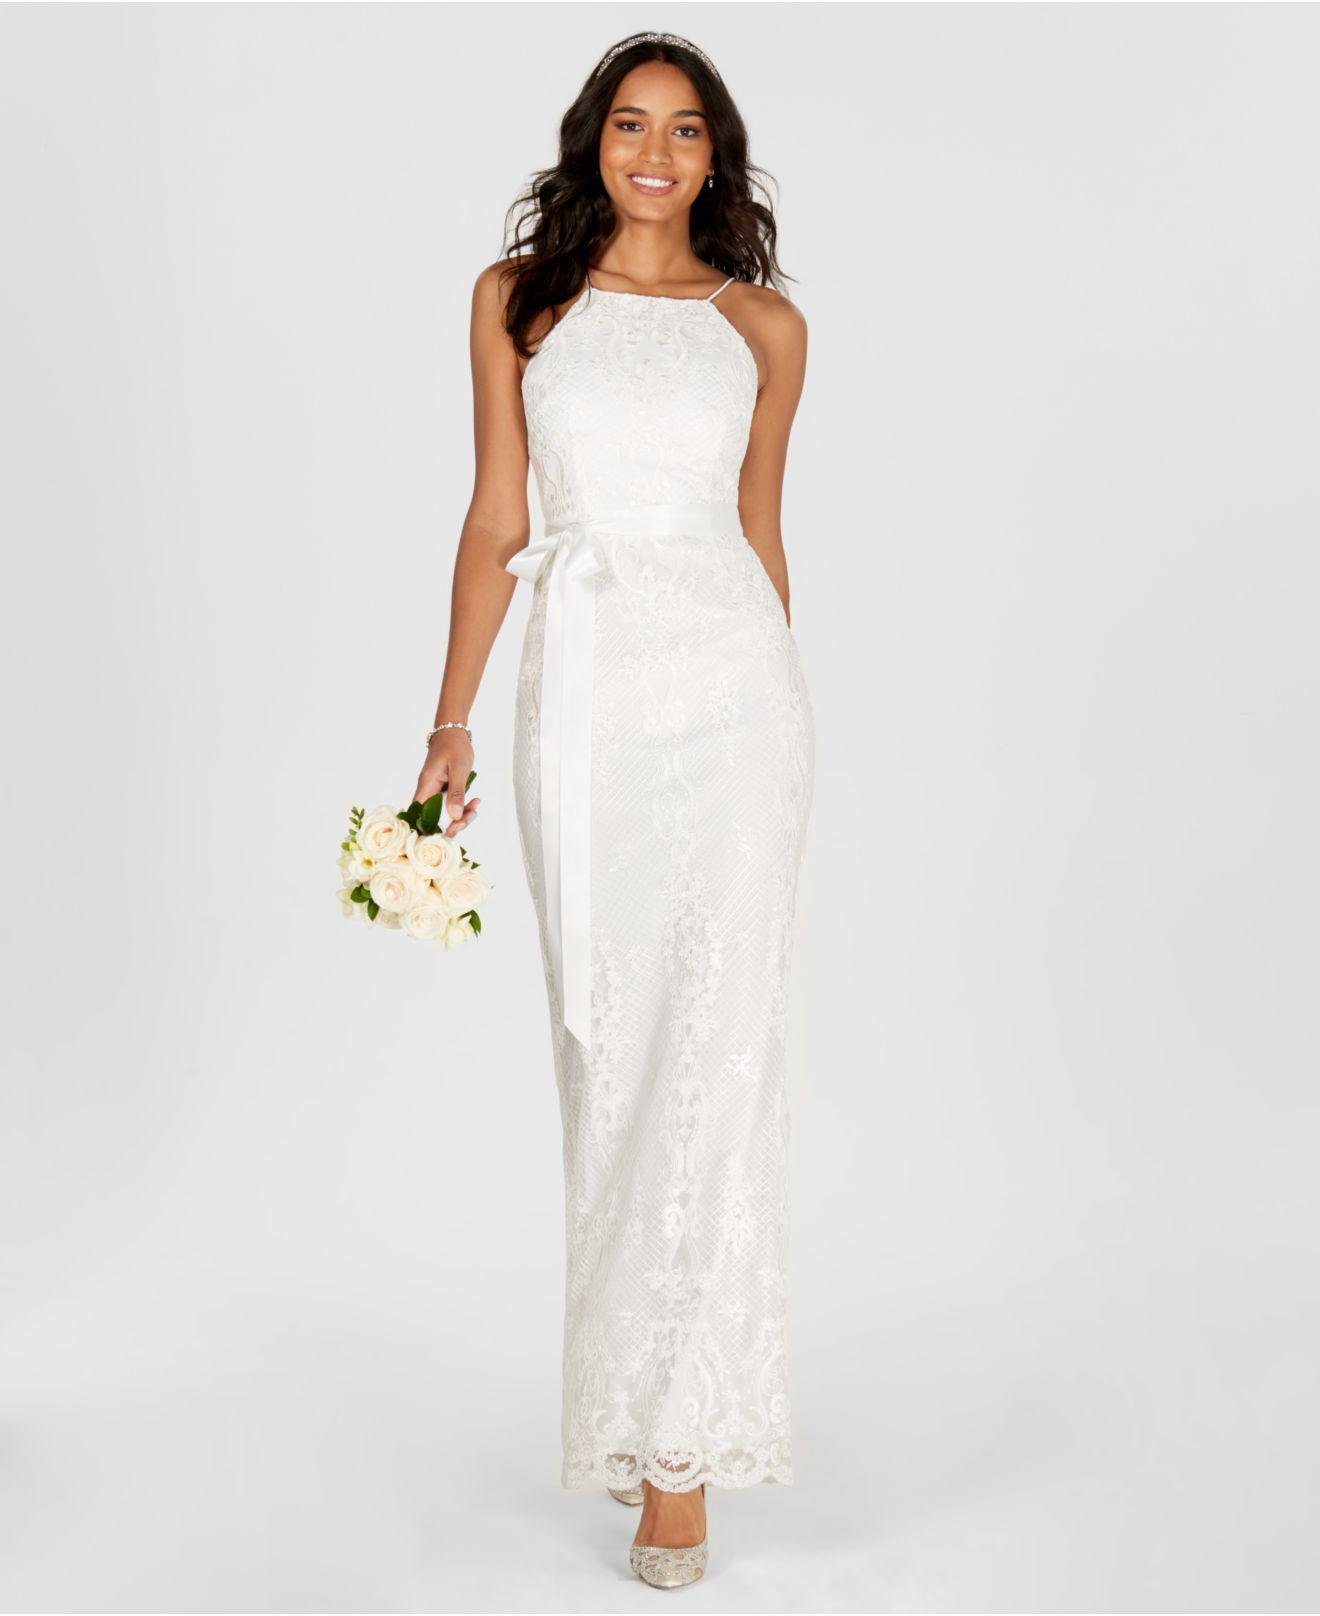 Lyst - Adrianna Papell Lace Halter Column Gown in White